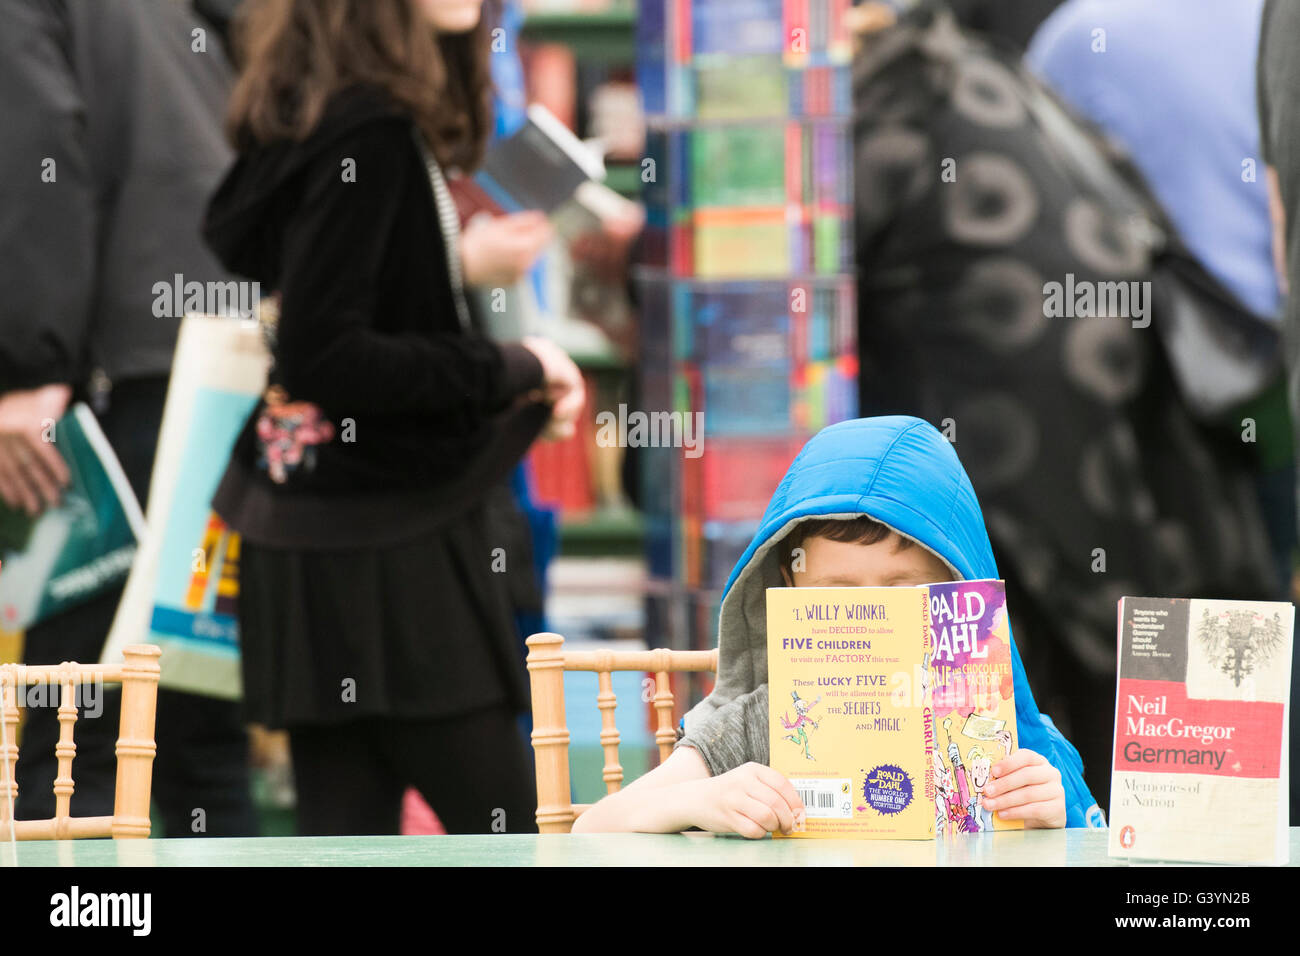 A small boy reading a book at  the Hay Festival of literature and the arts , Hay on Wye, Powys, Wales UK, May 2016 - Stock Image